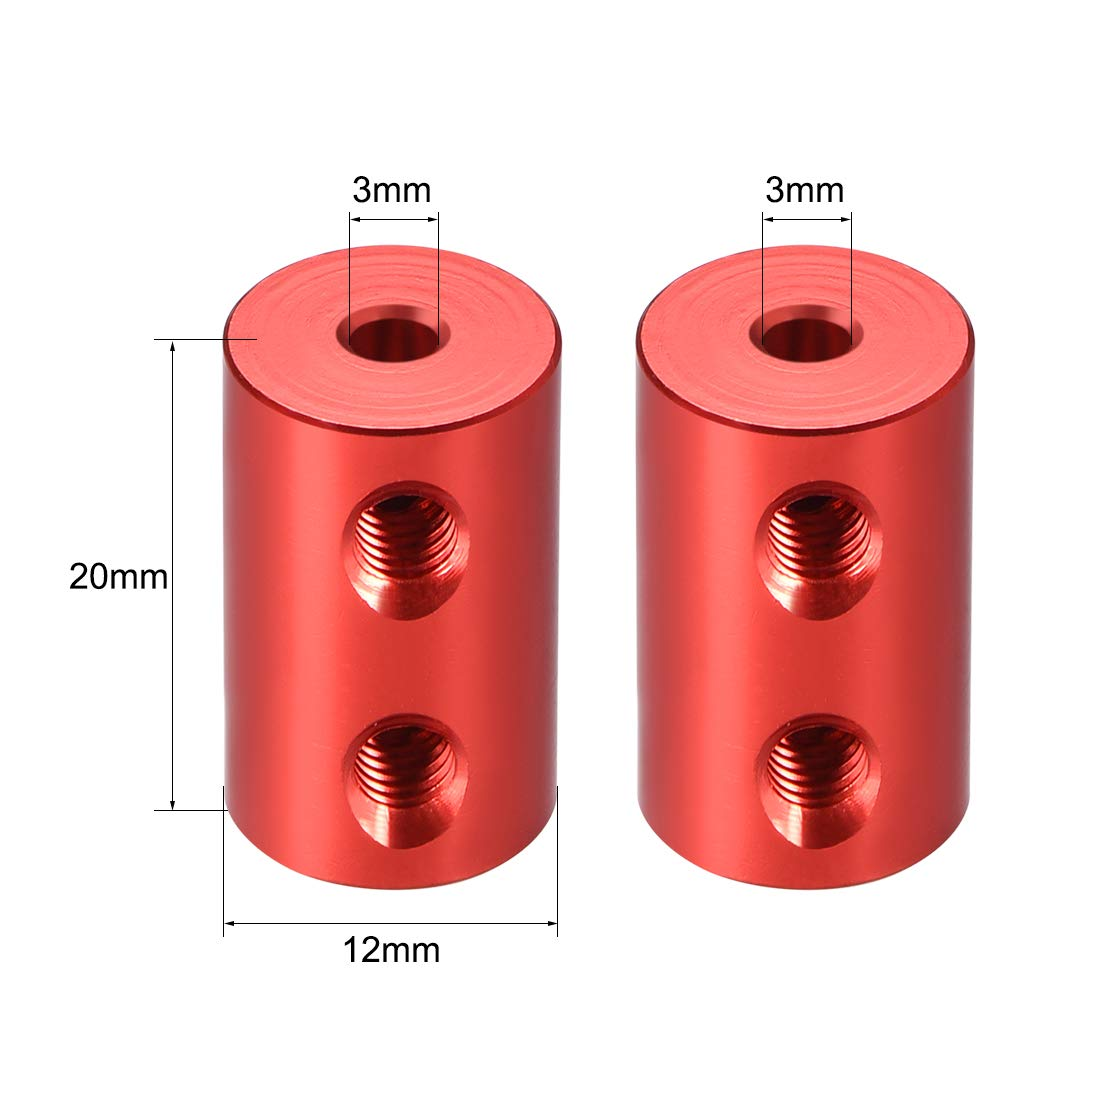 uxcell Shaft Coupling 2mm to 2mm Bore L20xD12 Robot Motor Wheel Rigid Coupler Connector Red 2 PCS